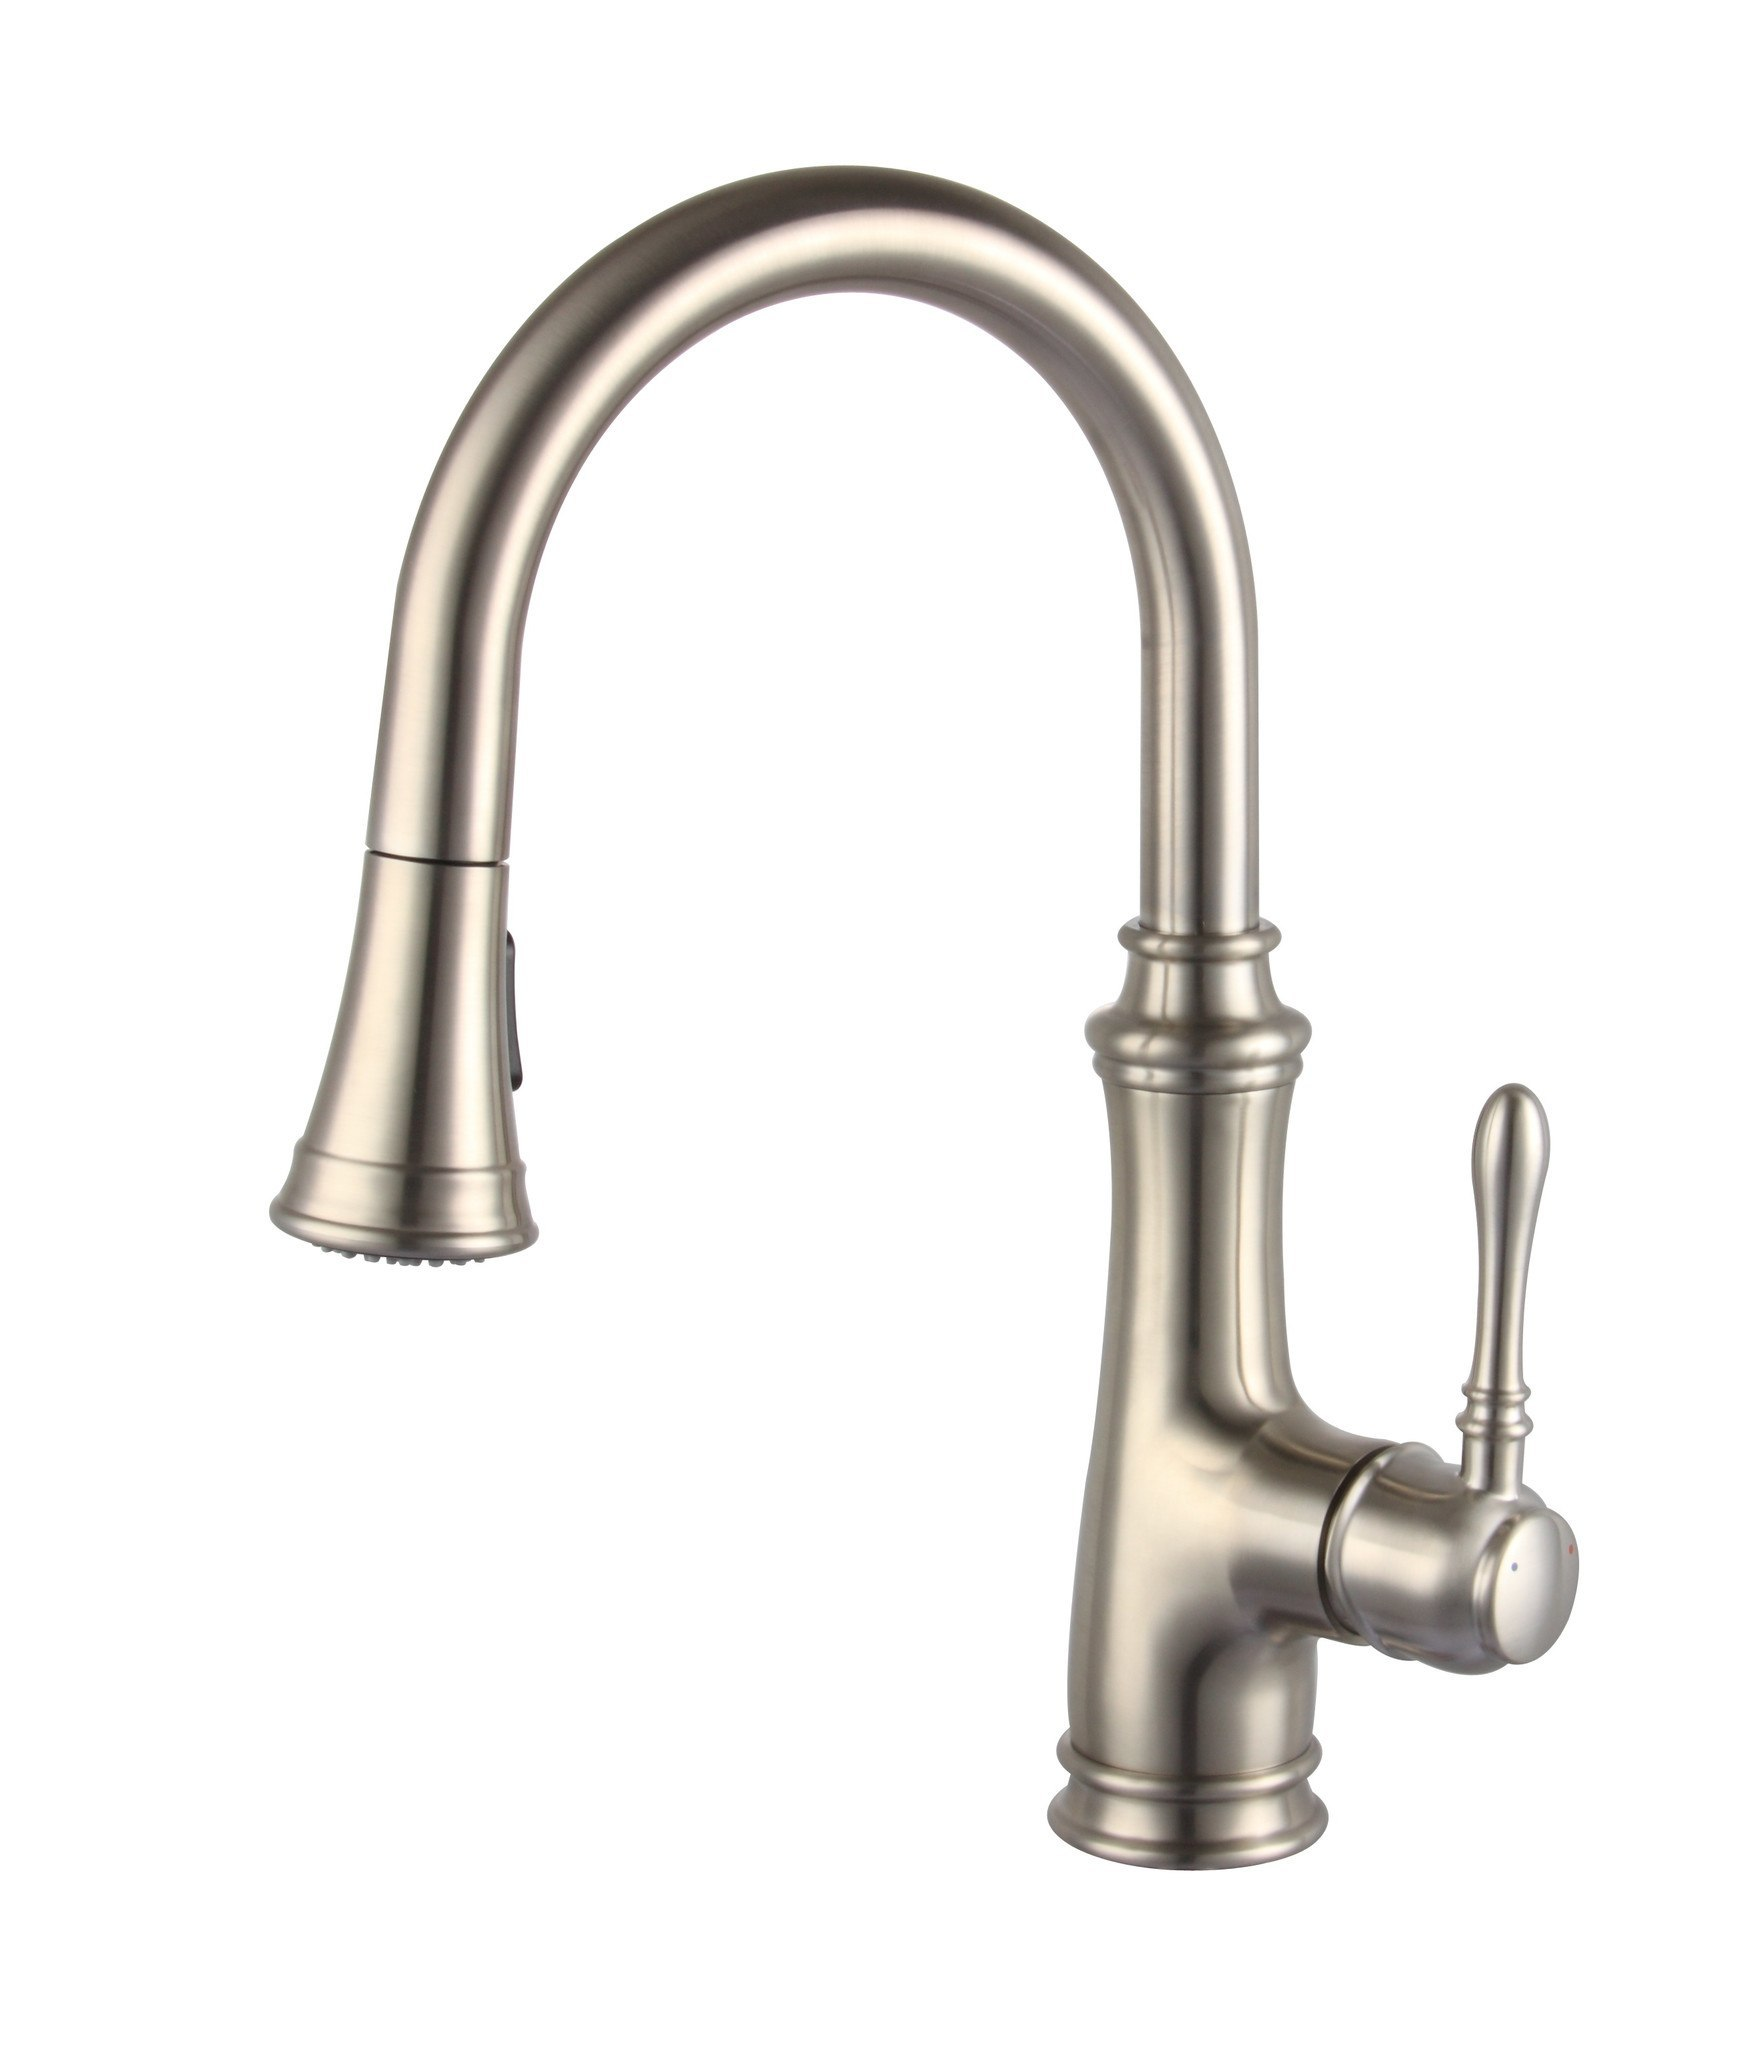 unusual-inspiration-ideas-kitchen-faucet-with-pull-out-sprayer-26.jpg